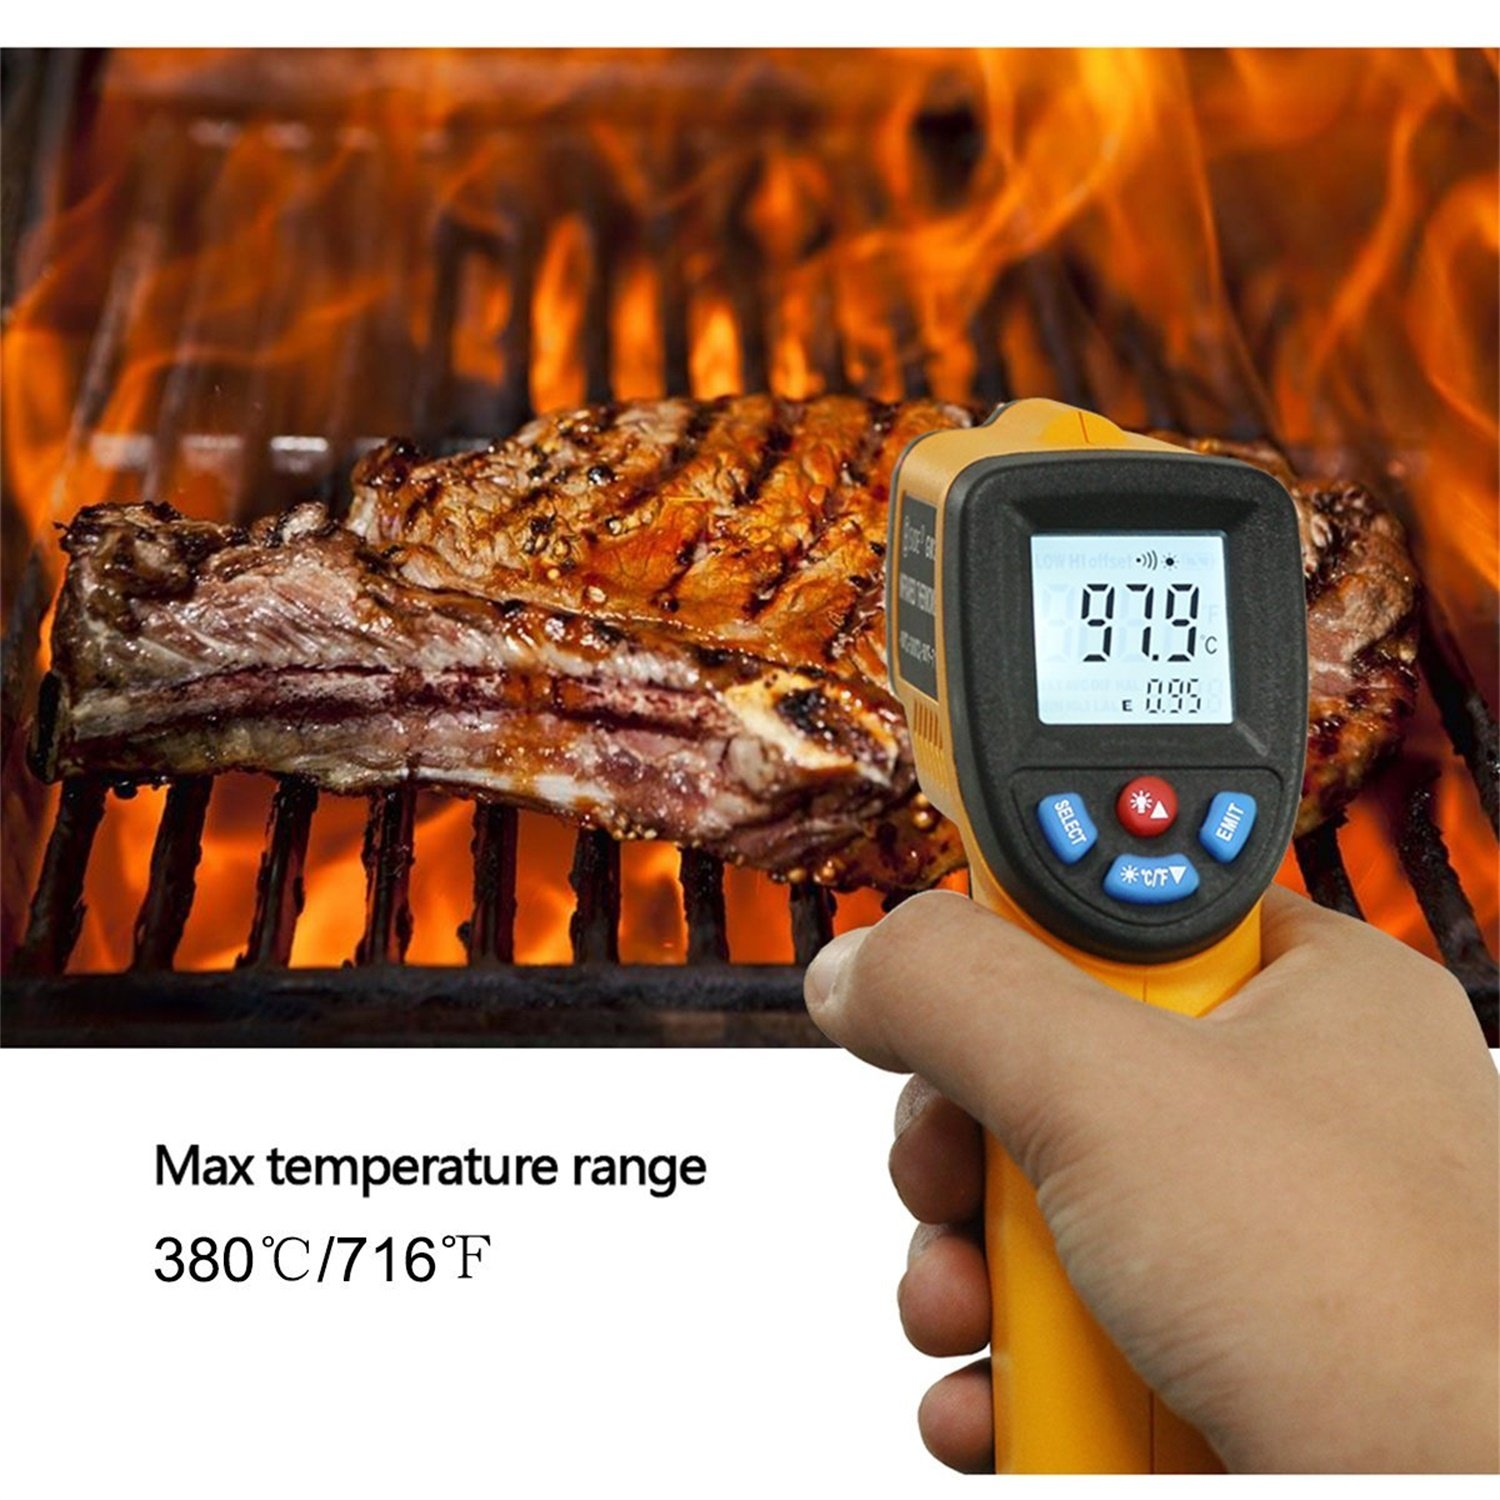 BSIDE GM320 Non-contact Digital Laser Infrared Thermometer Temperature Gun -58 -716 -50 -380 for Cooking BBQ Kitchen Automotive and Industrial